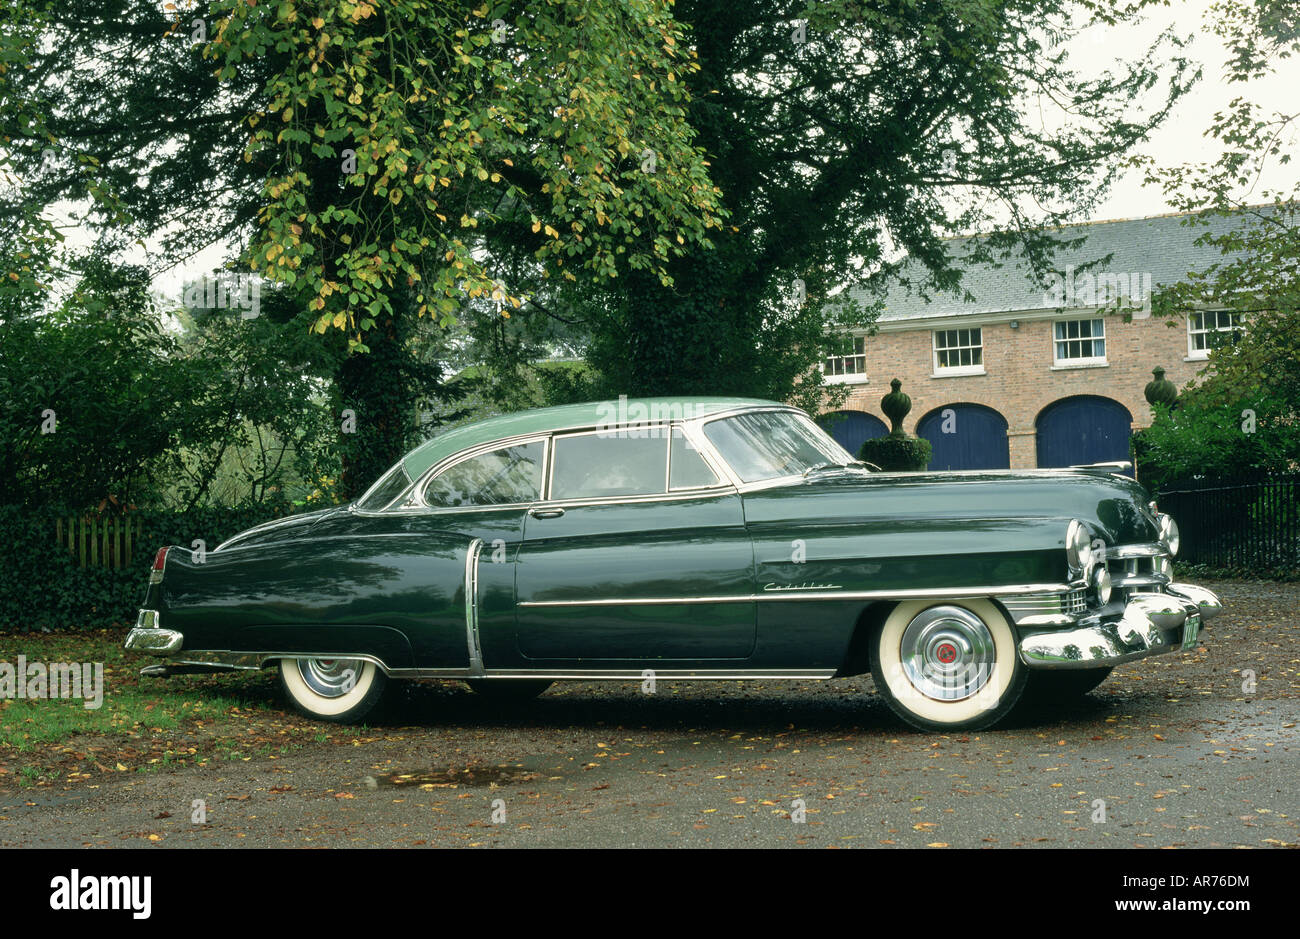 Cadillac Deville Stock Photos Images Page 1951 Fleetwood Sedan Coupe